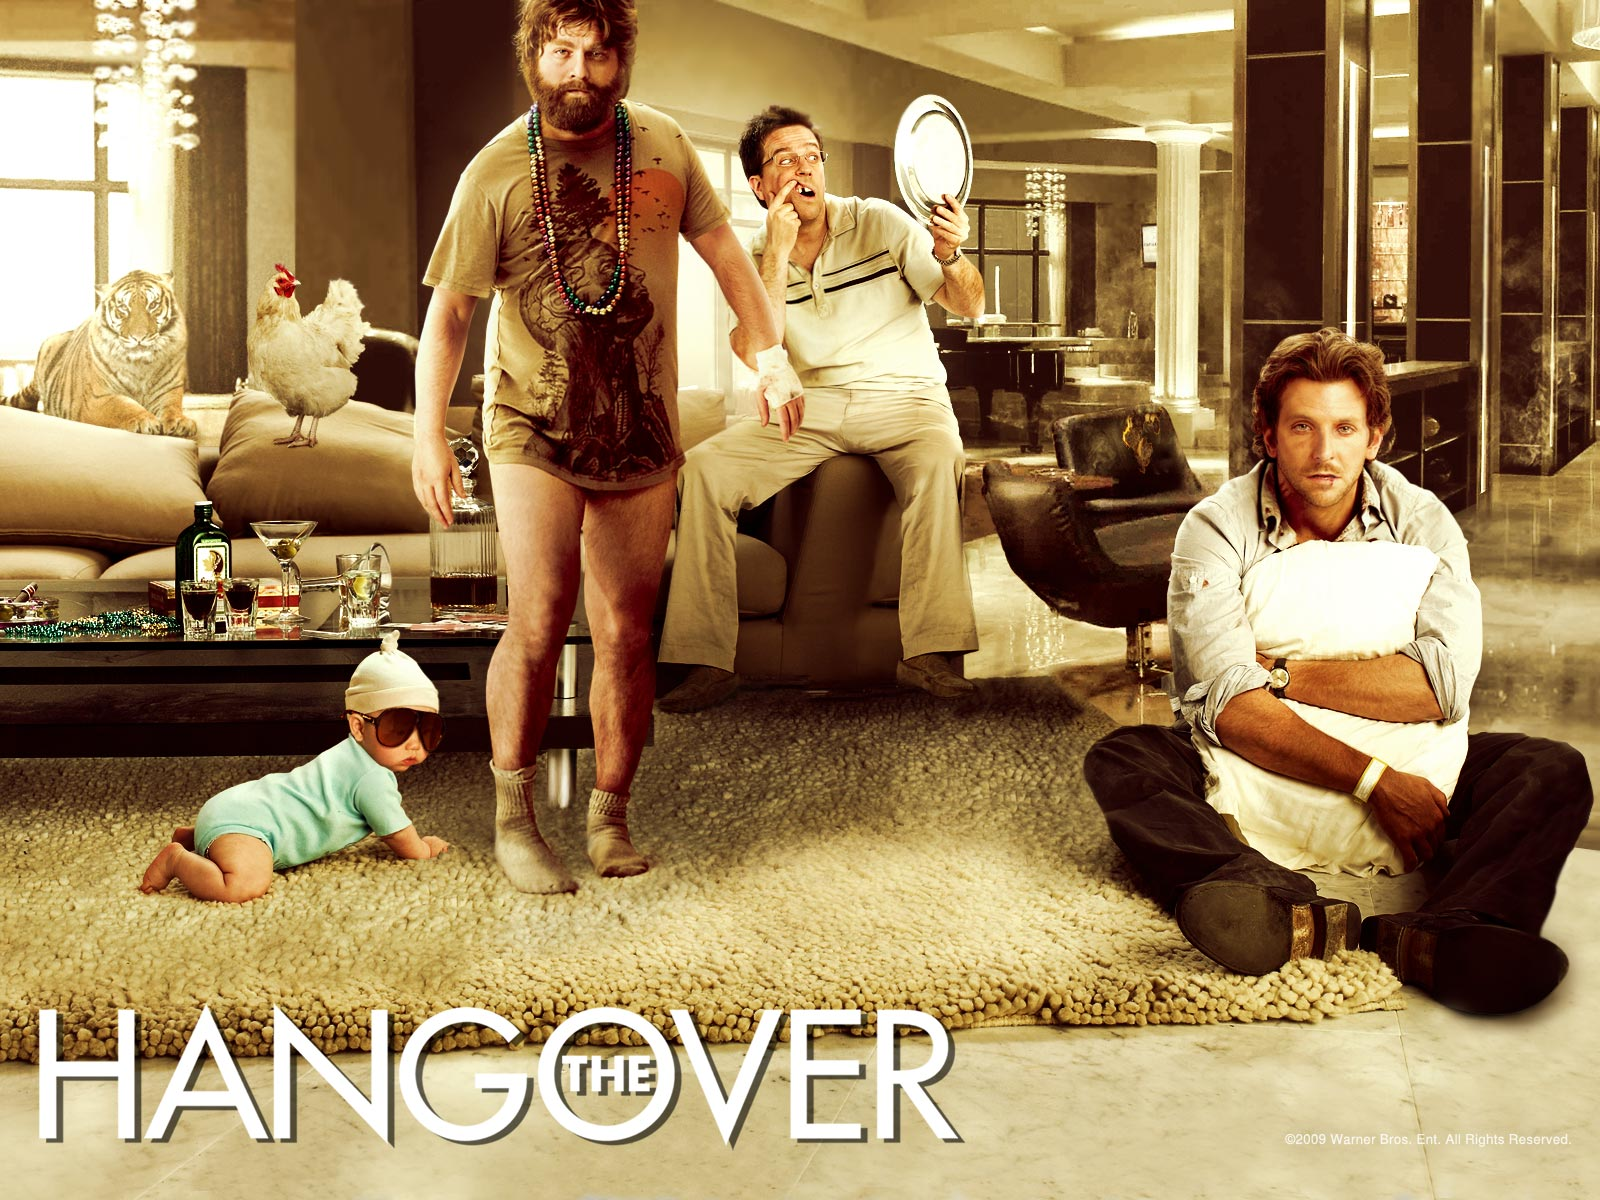 The Hangover Movie 813.79 Kb